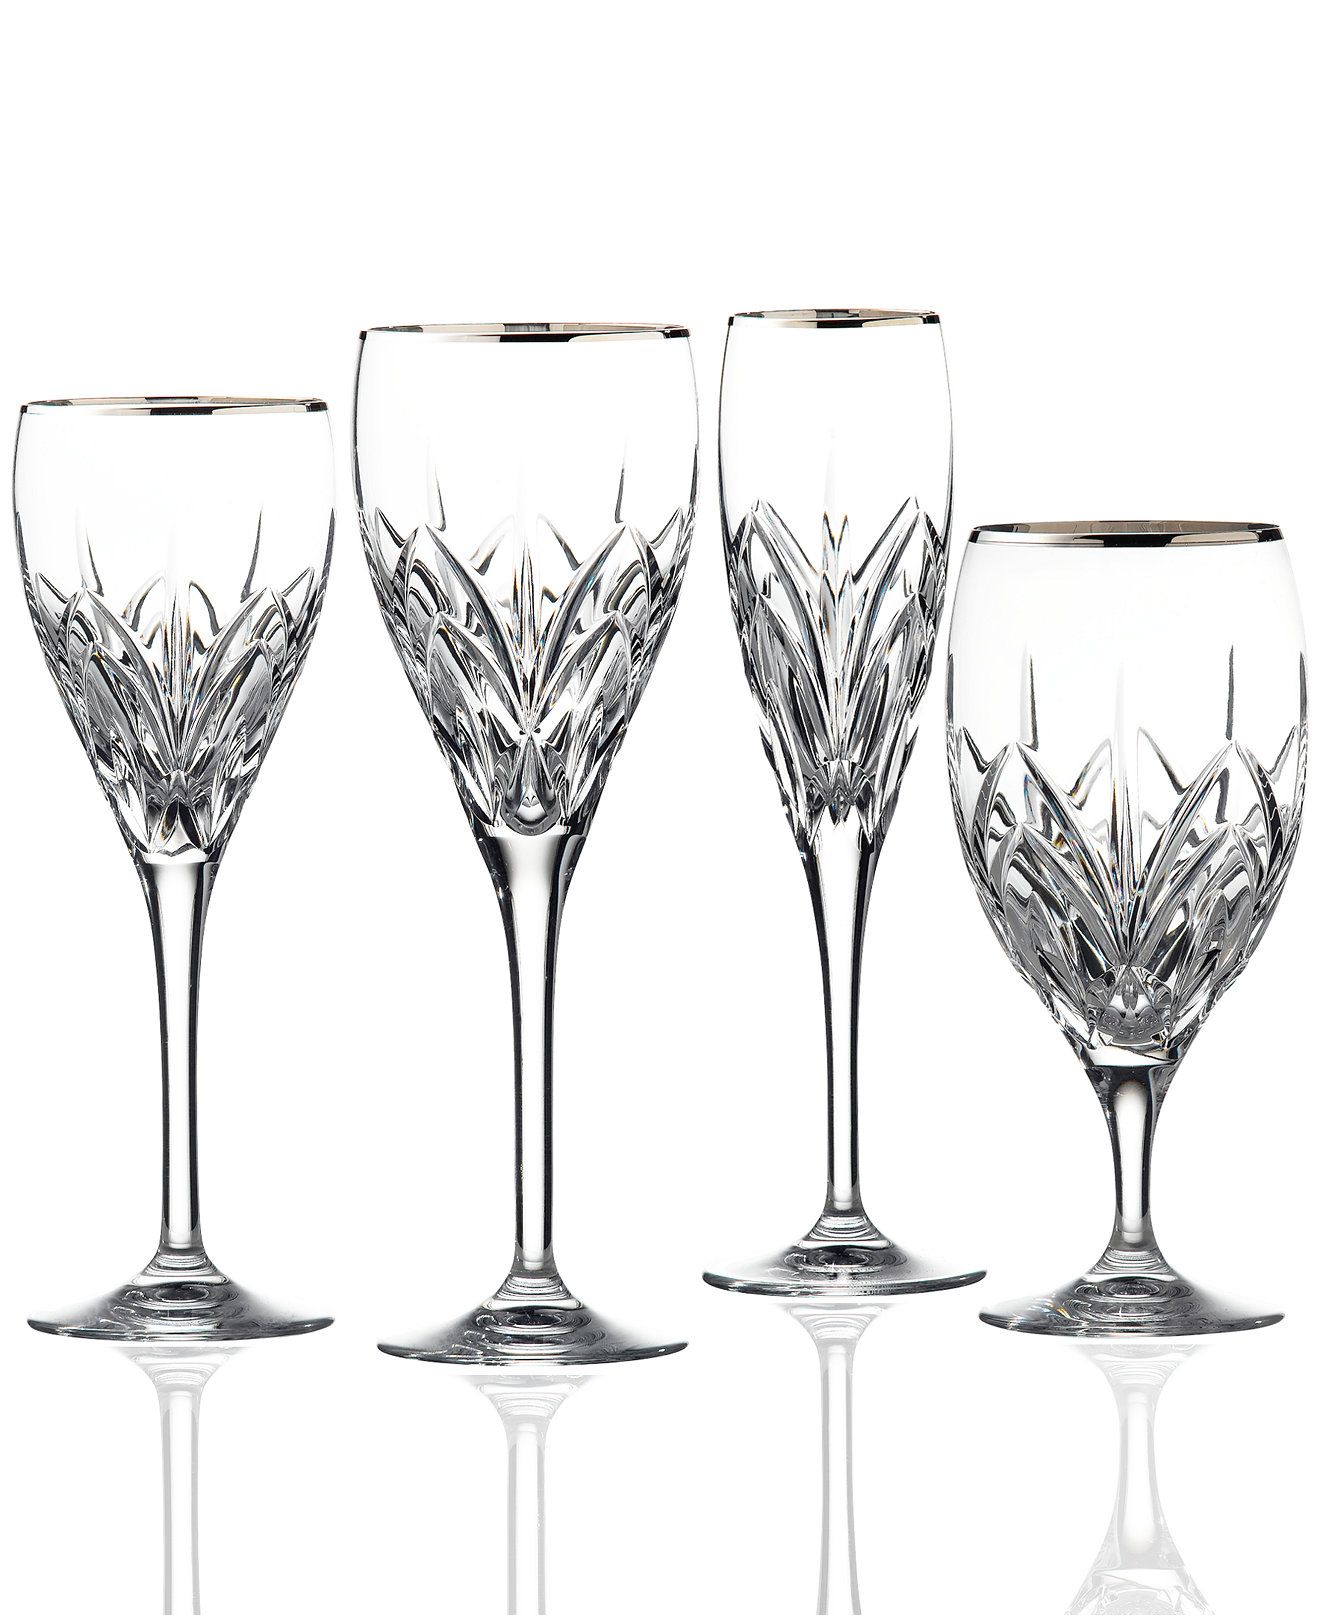 Magnificent waterford crystal patterns for dining sets ideas with waterford crystal glass patterns